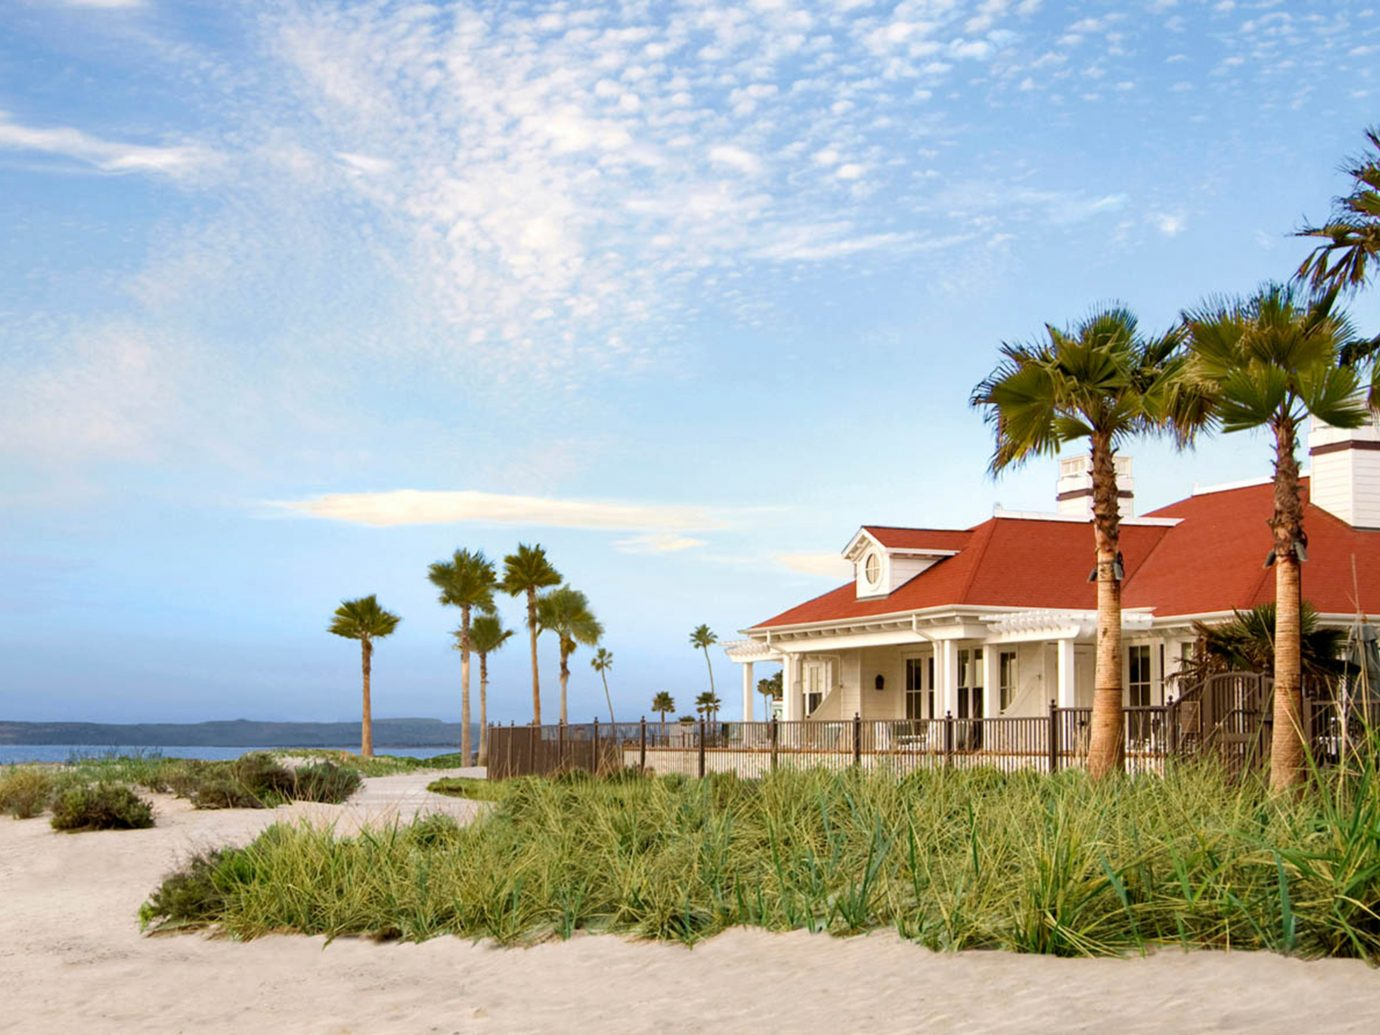 Beach Exterior Grounds Hotels Ocean Waterfront outdoor sky grass house body of water shore vacation Sea caribbean Coast Resort arecales landscape bay estate tropics sign